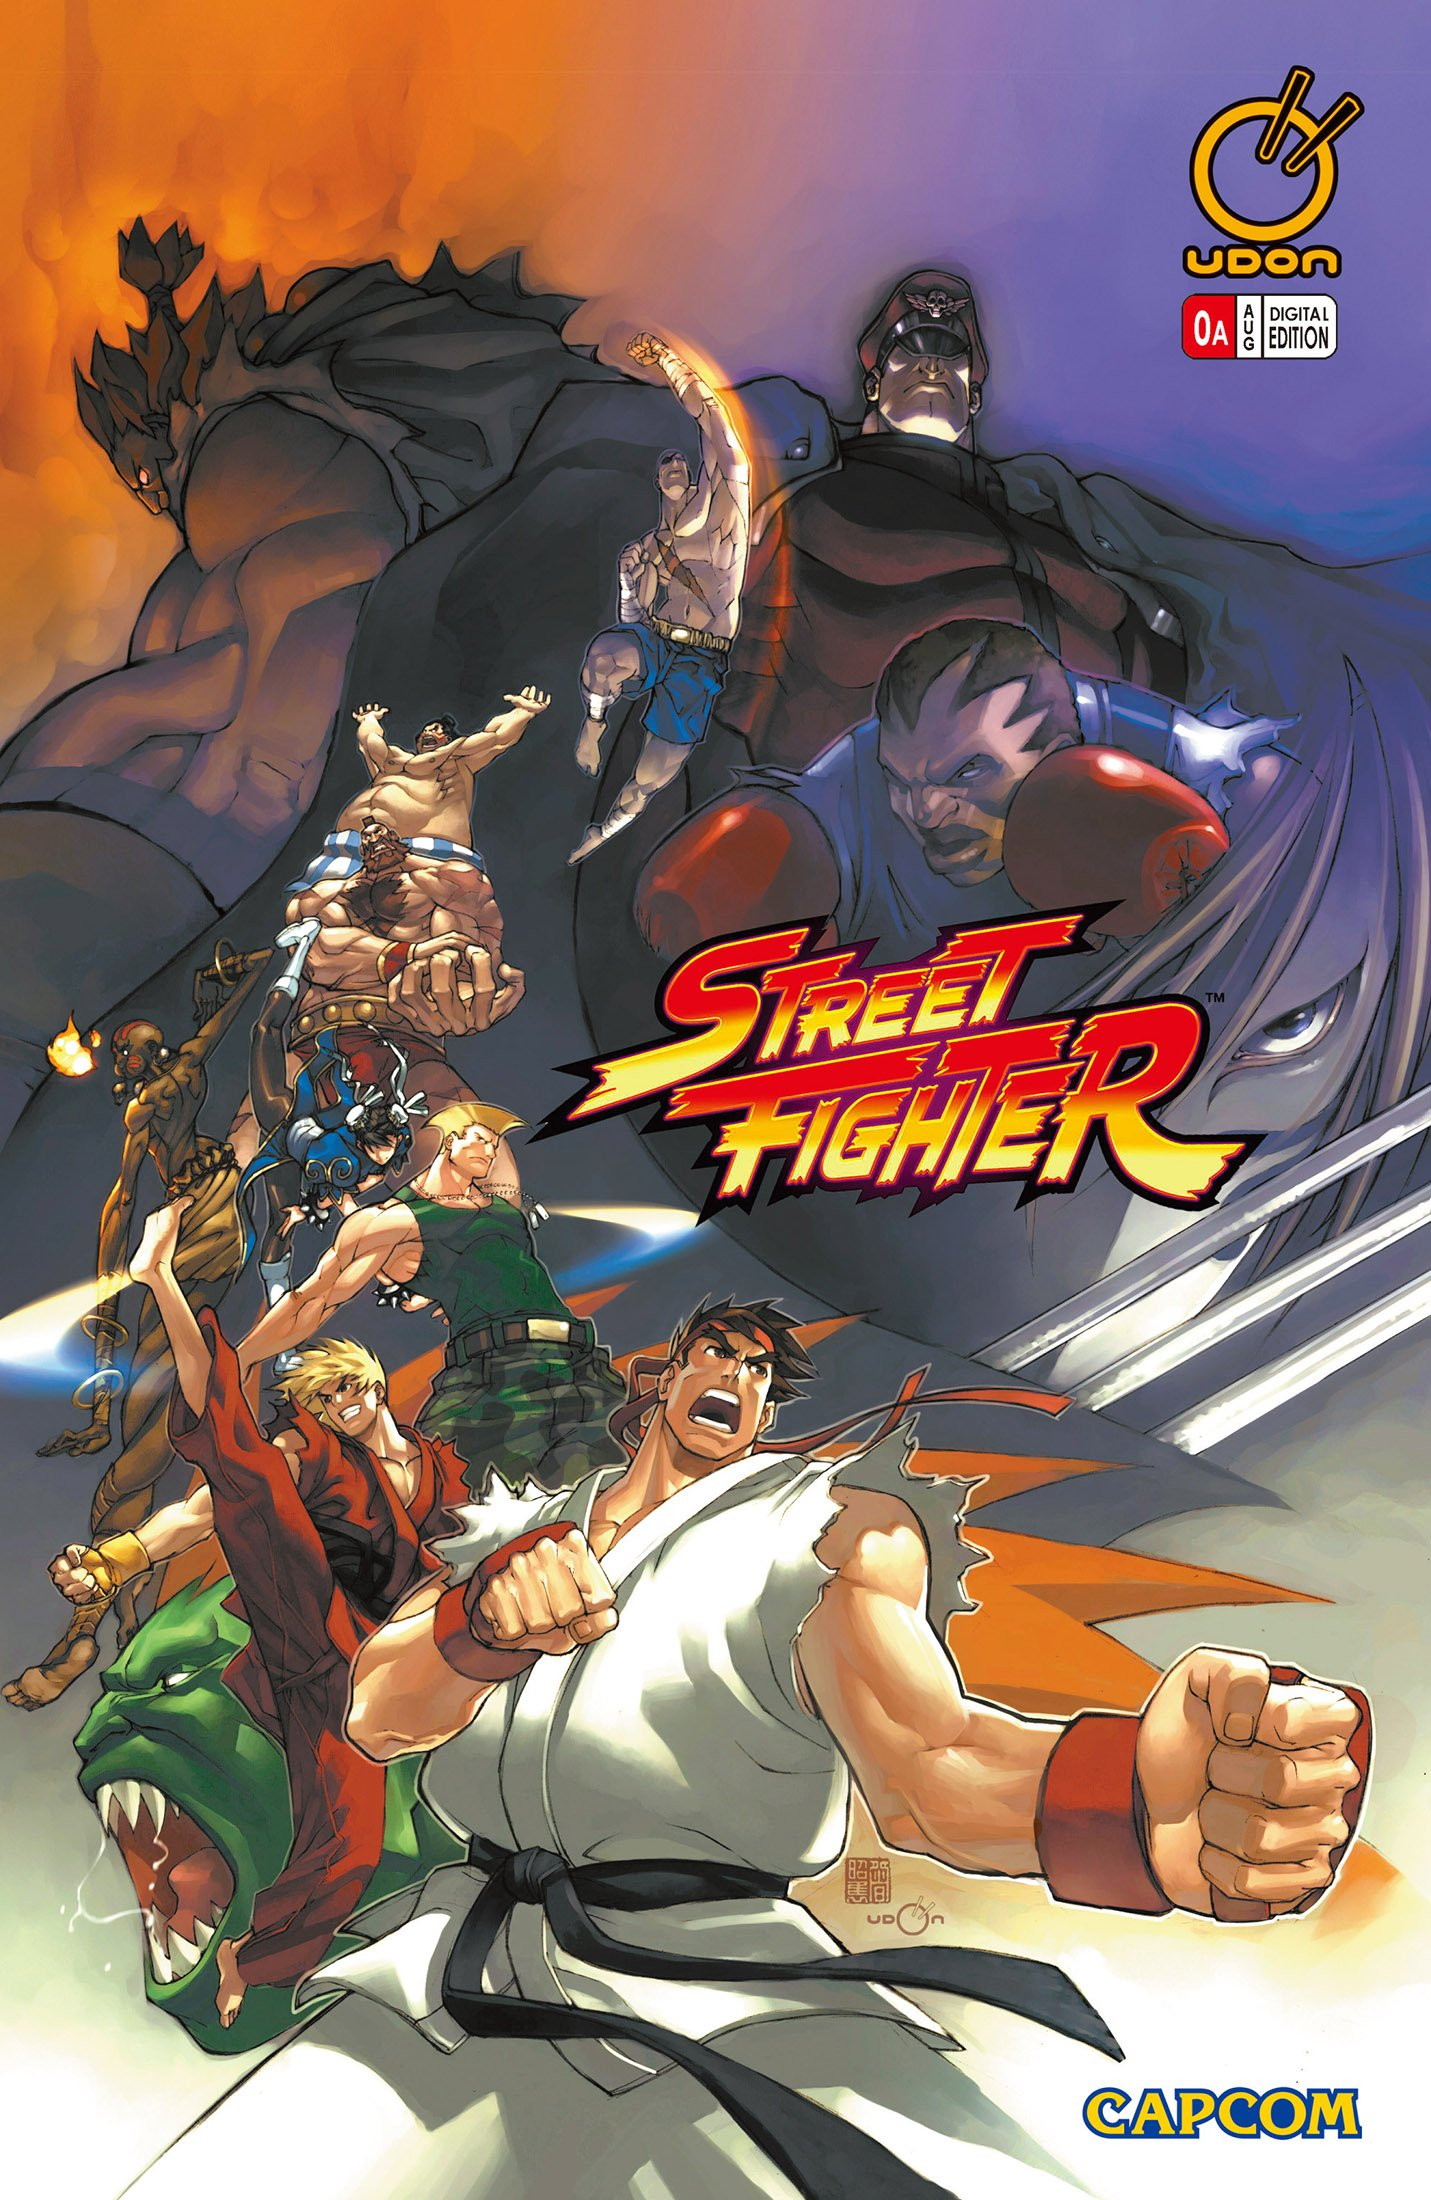 Street Fighter Vol.1 000 (August 2003) (cover a)